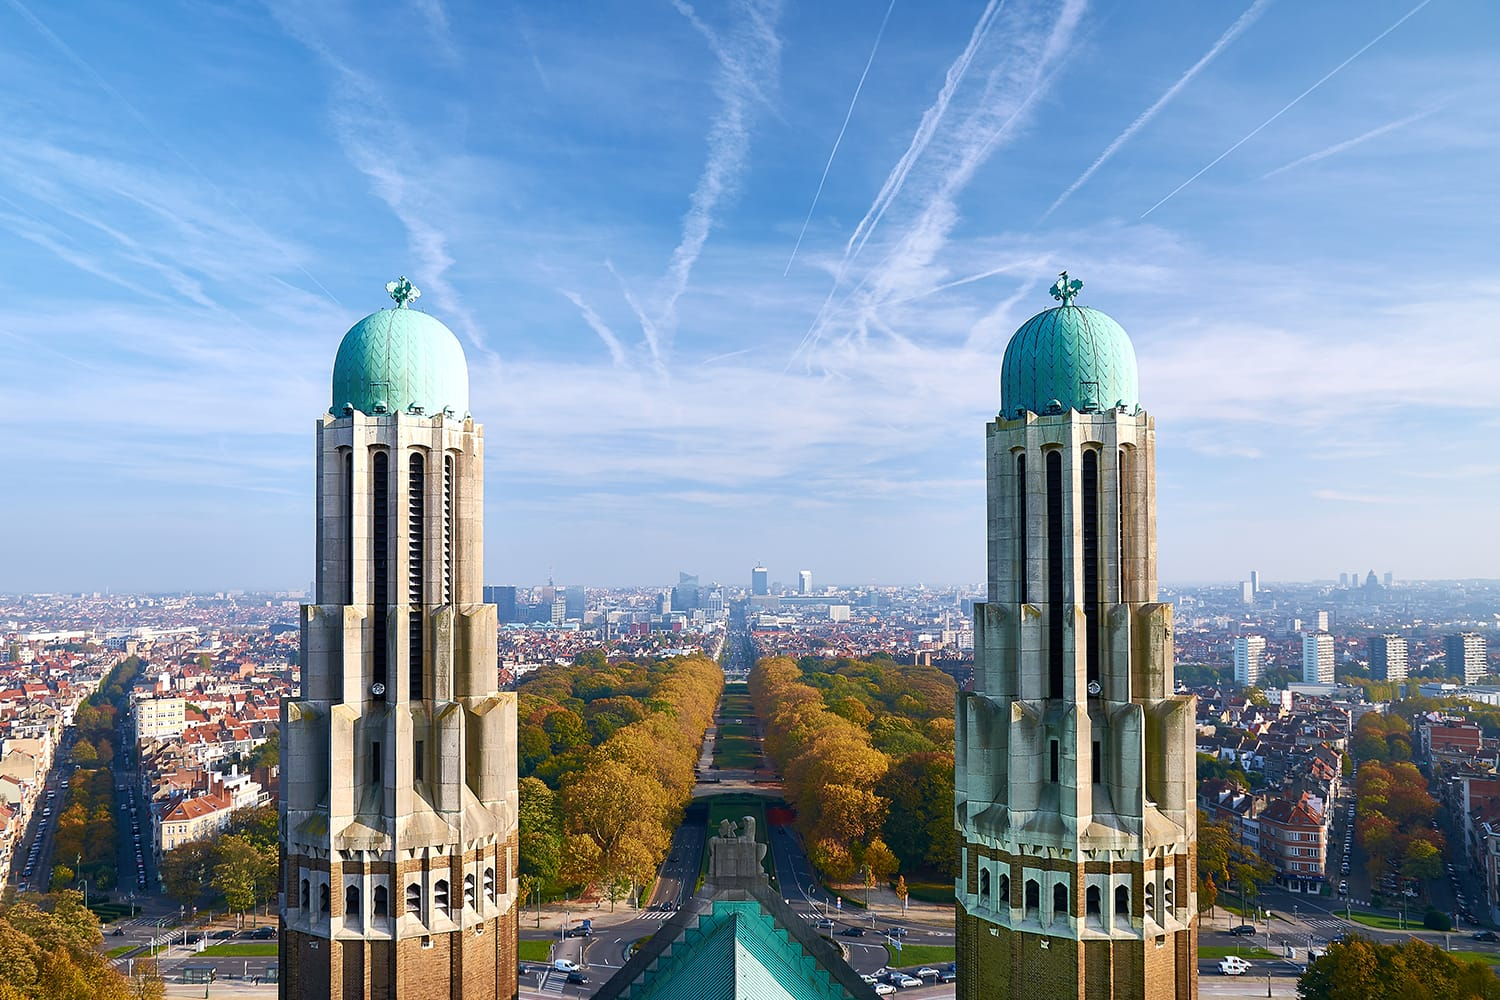 View from the roof of National Basilica of the Sacred Heart to the financial district in Brussels, Belgium